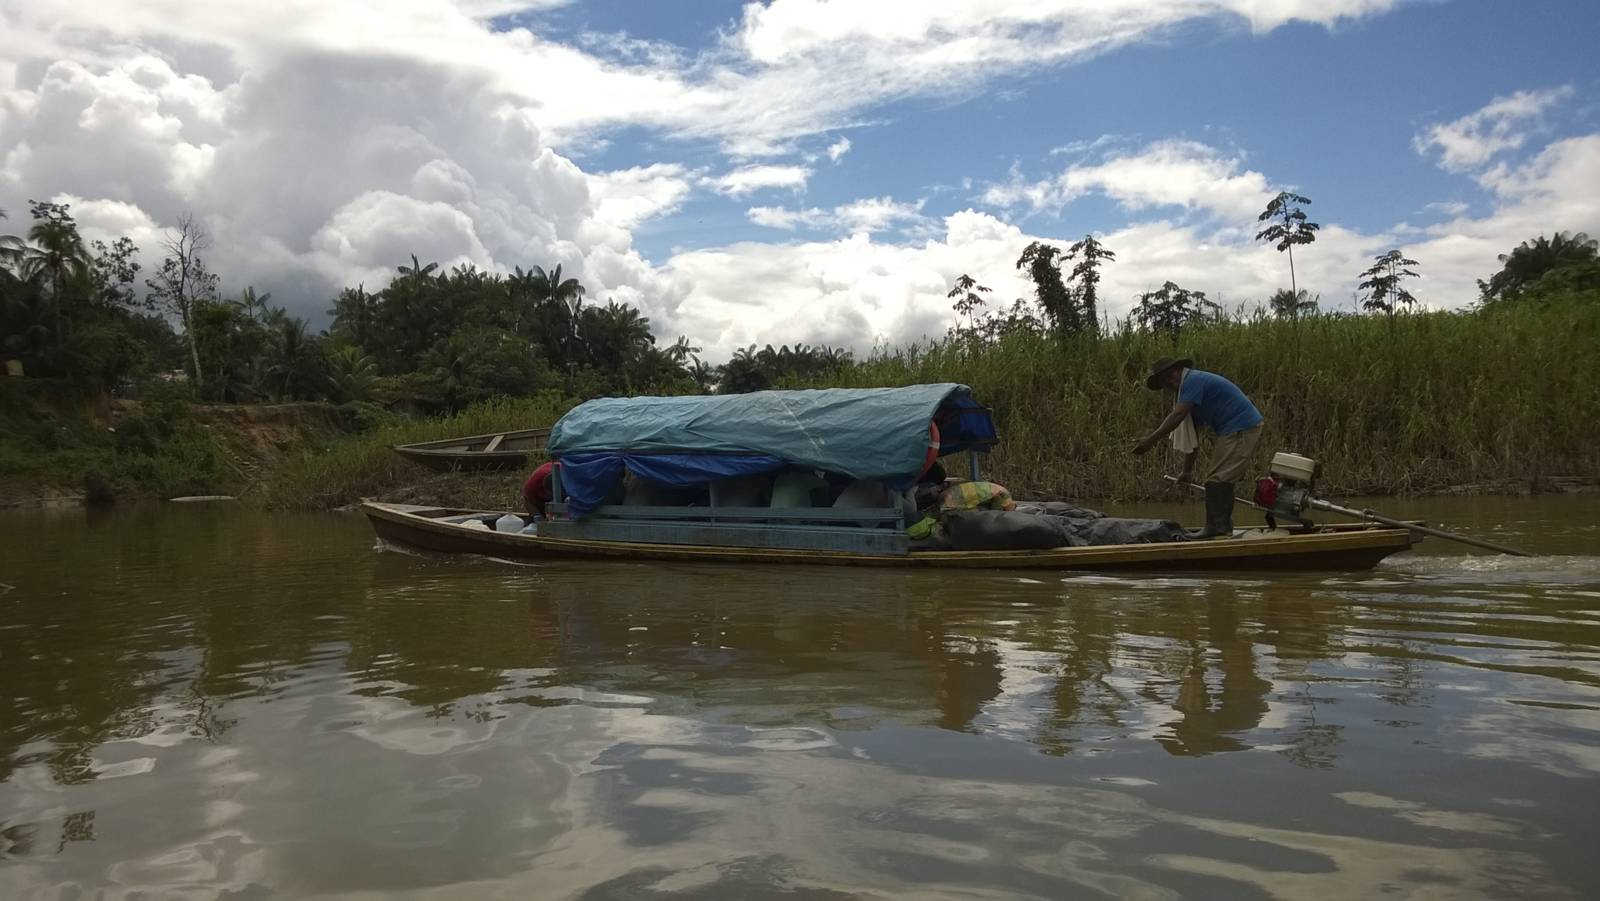 Colombia-amazonia-water-taxi-boat-trip